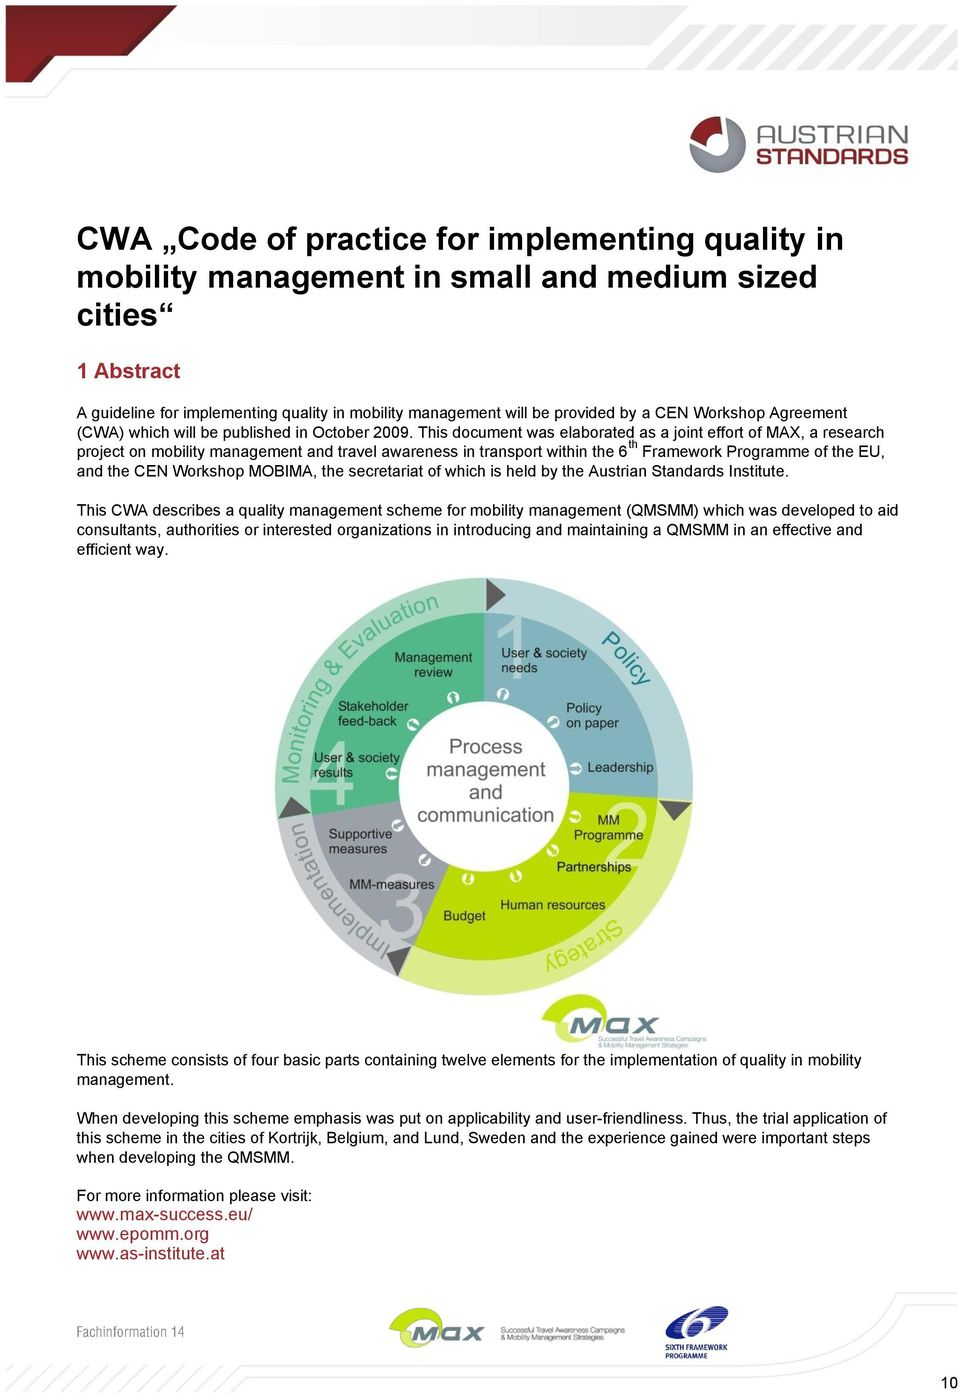 This document was elaborated as a joint effort of MAX, a research project on mobility management and travel awareness in transport within the 6 th Framework Programme of the EU, and the CEN Workshop